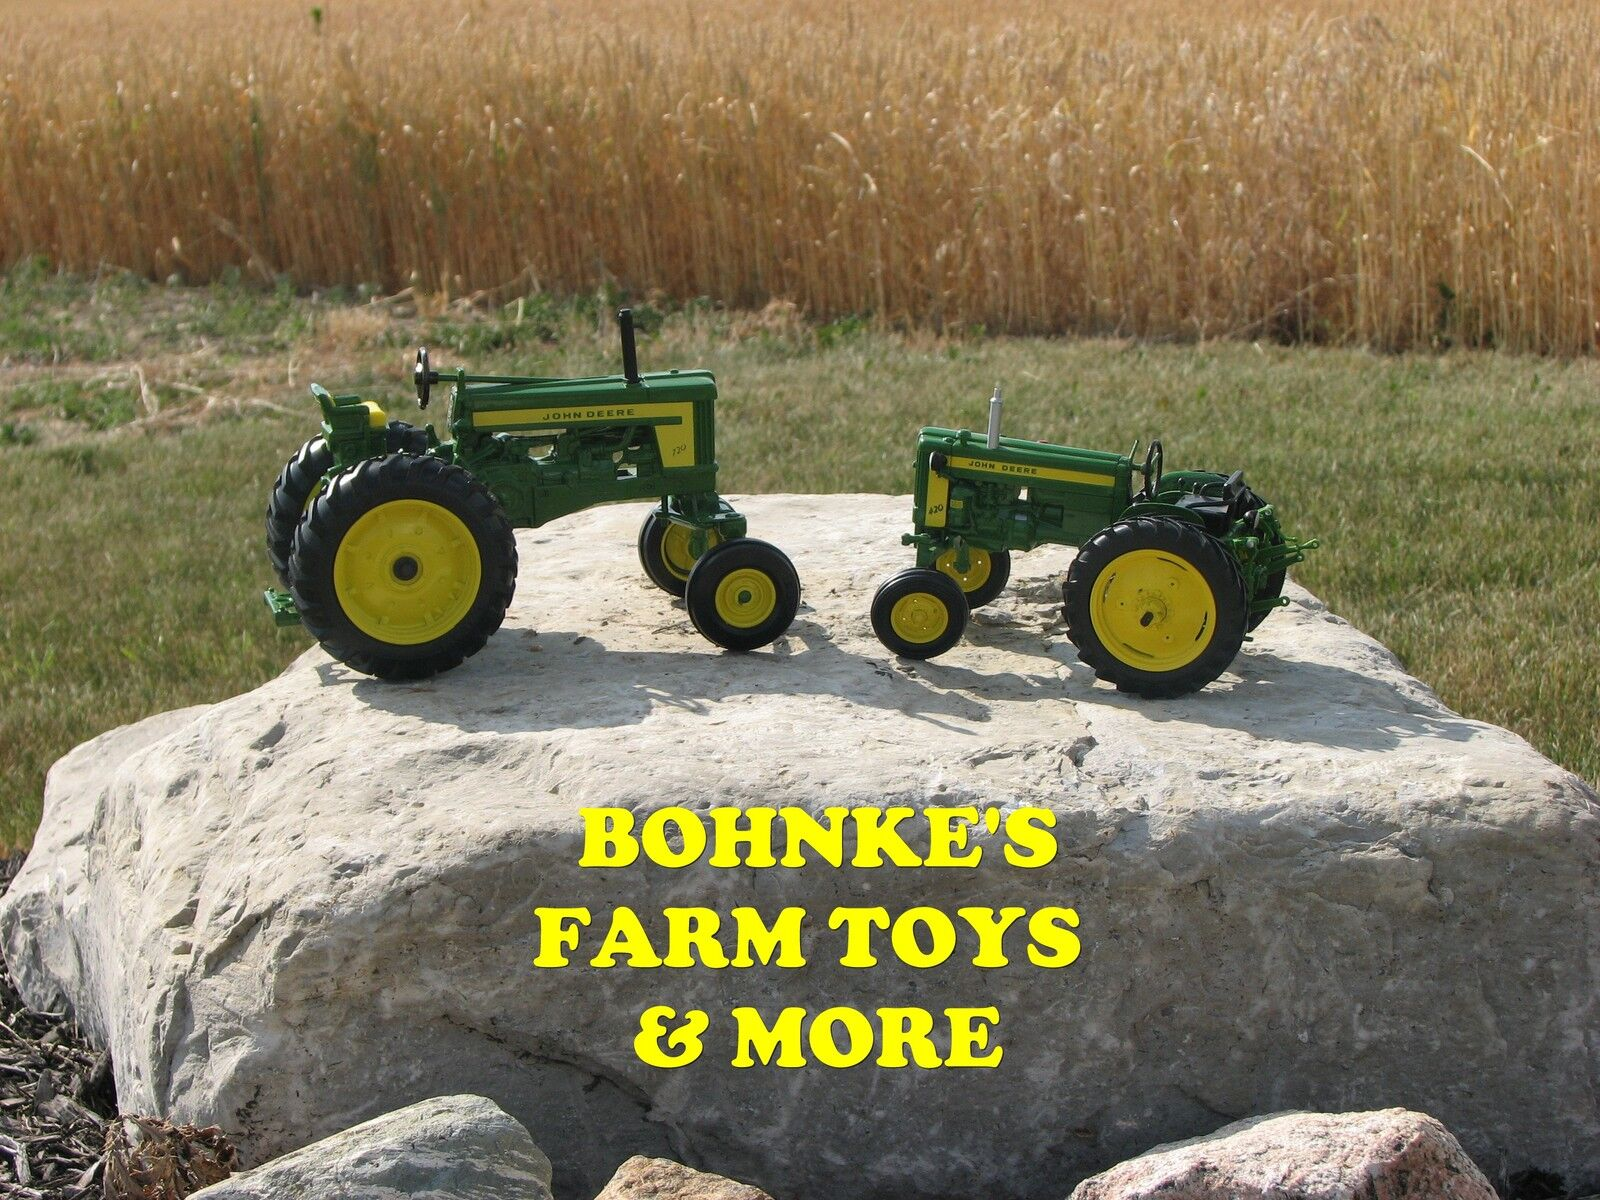 Bohnke's Farm Toys and More